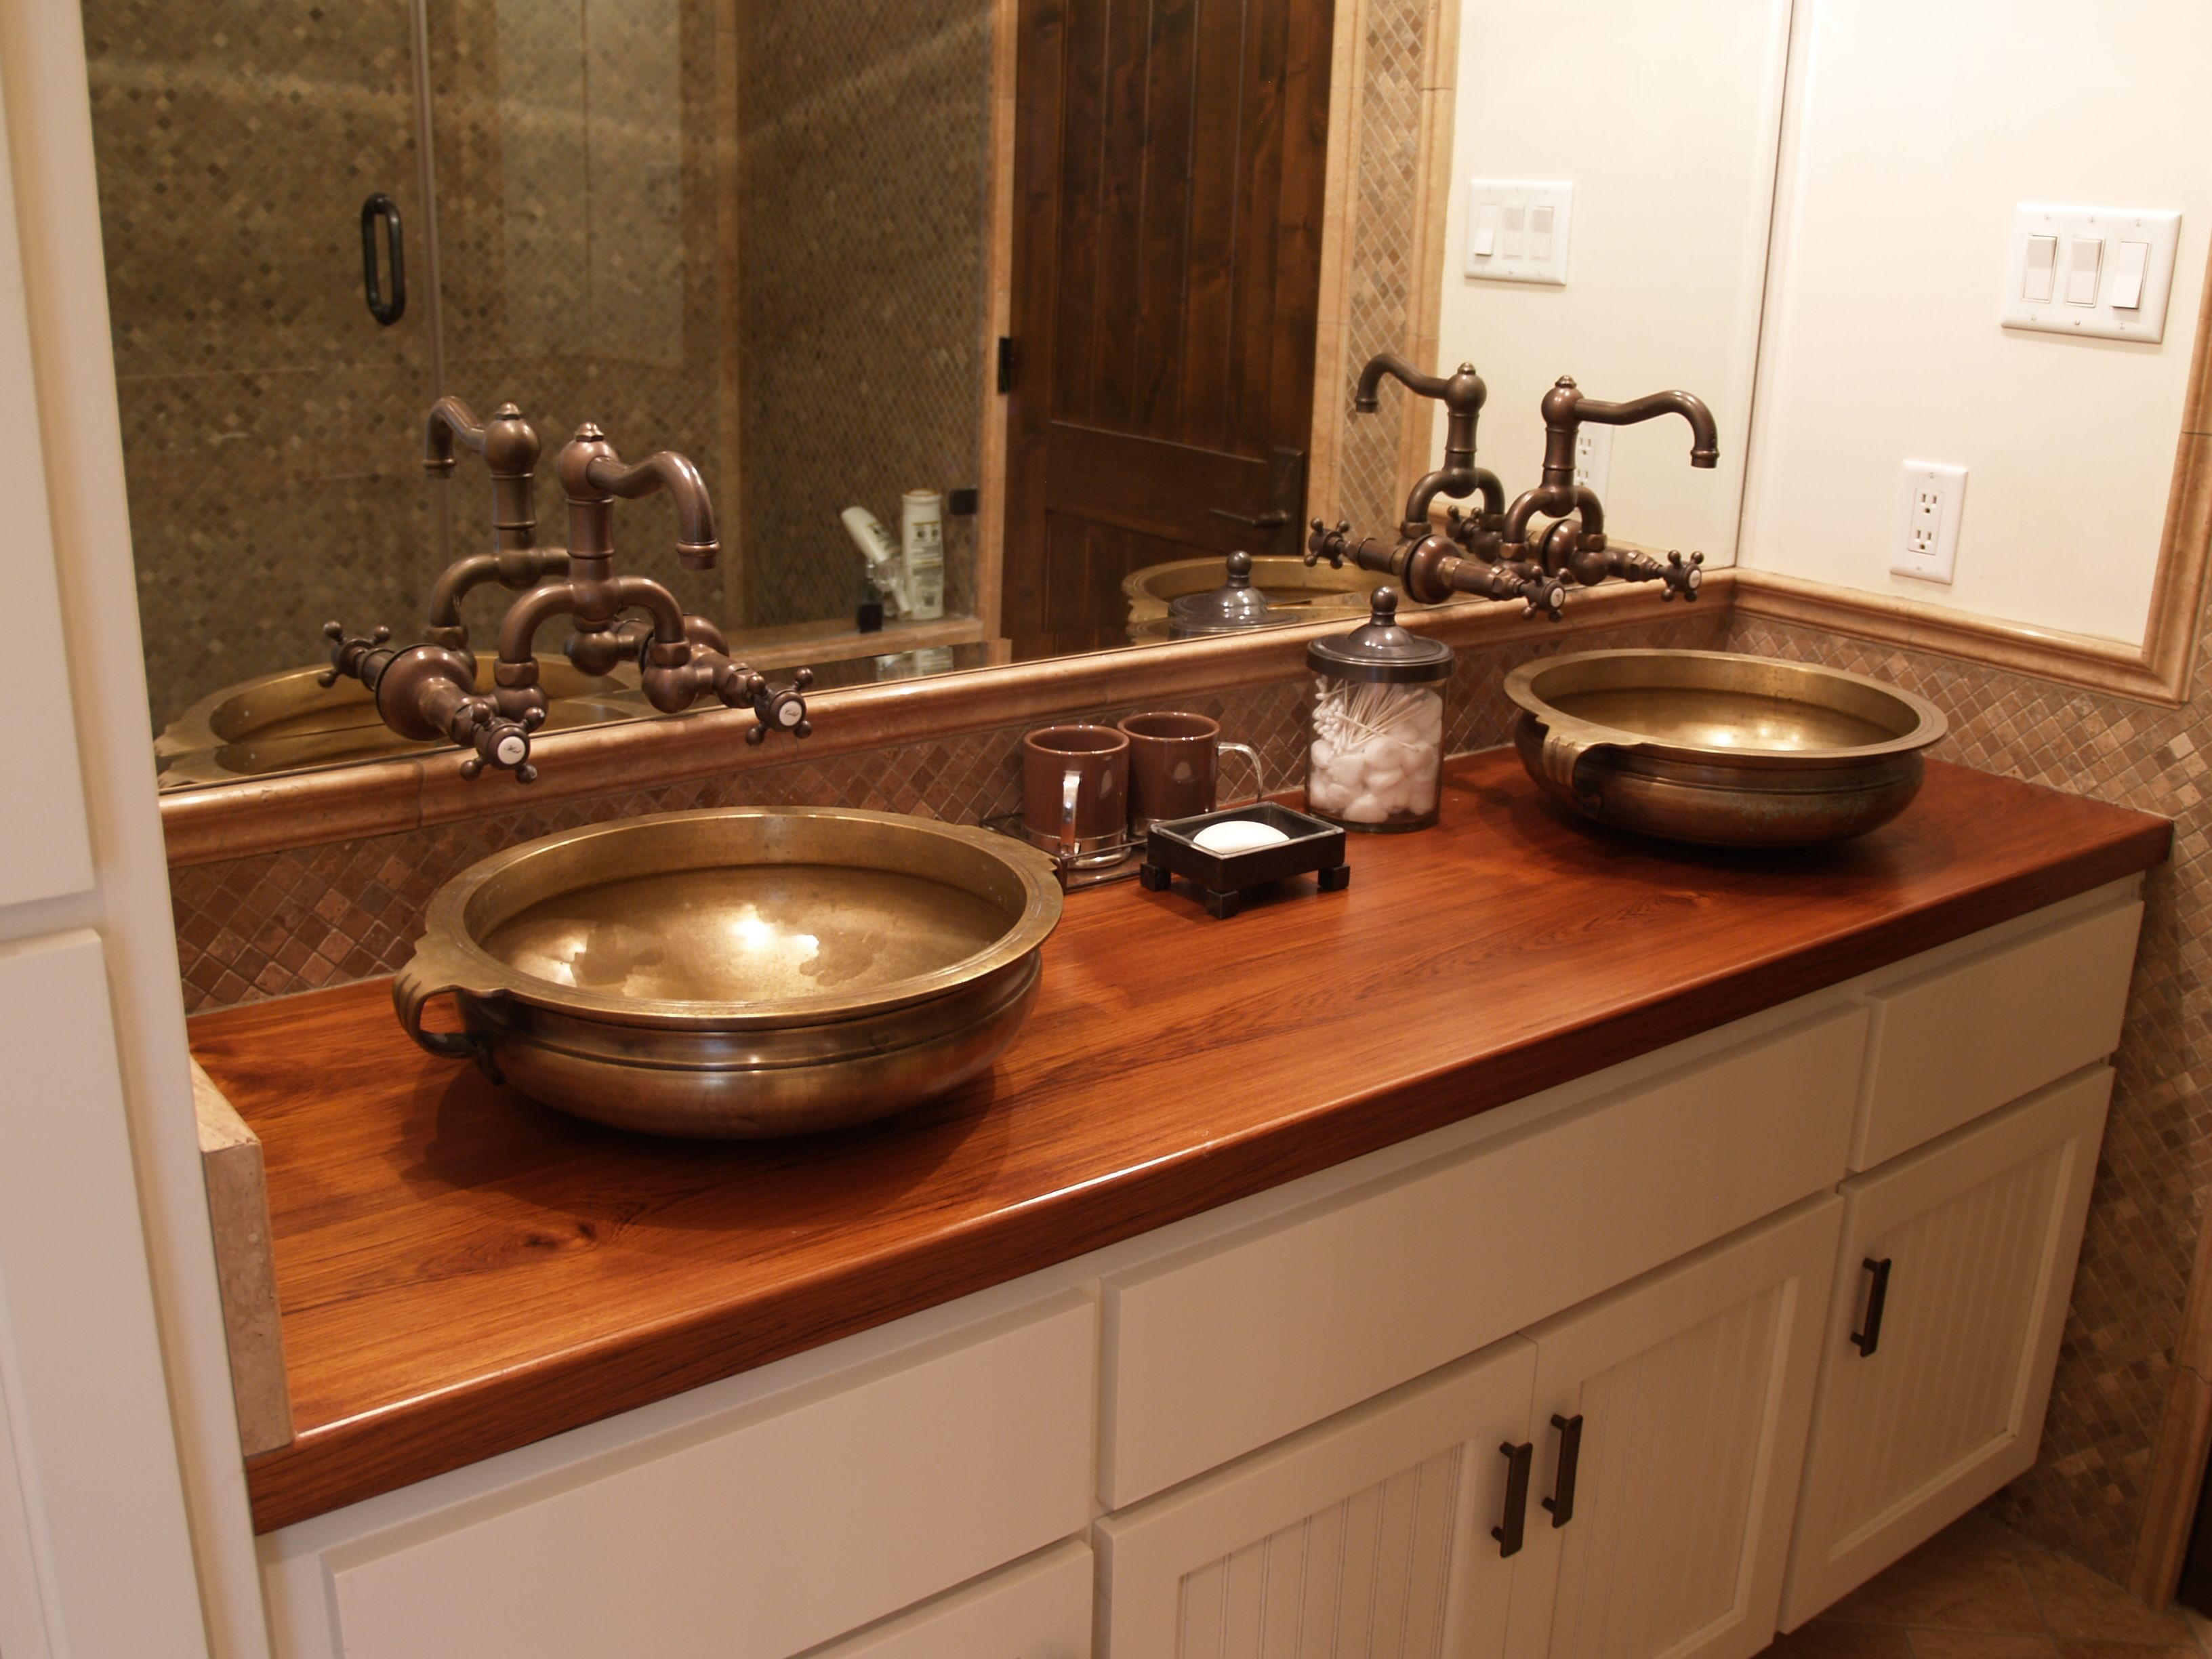 Countertops Teak Face Grain Custom Wood Vanity Countertop